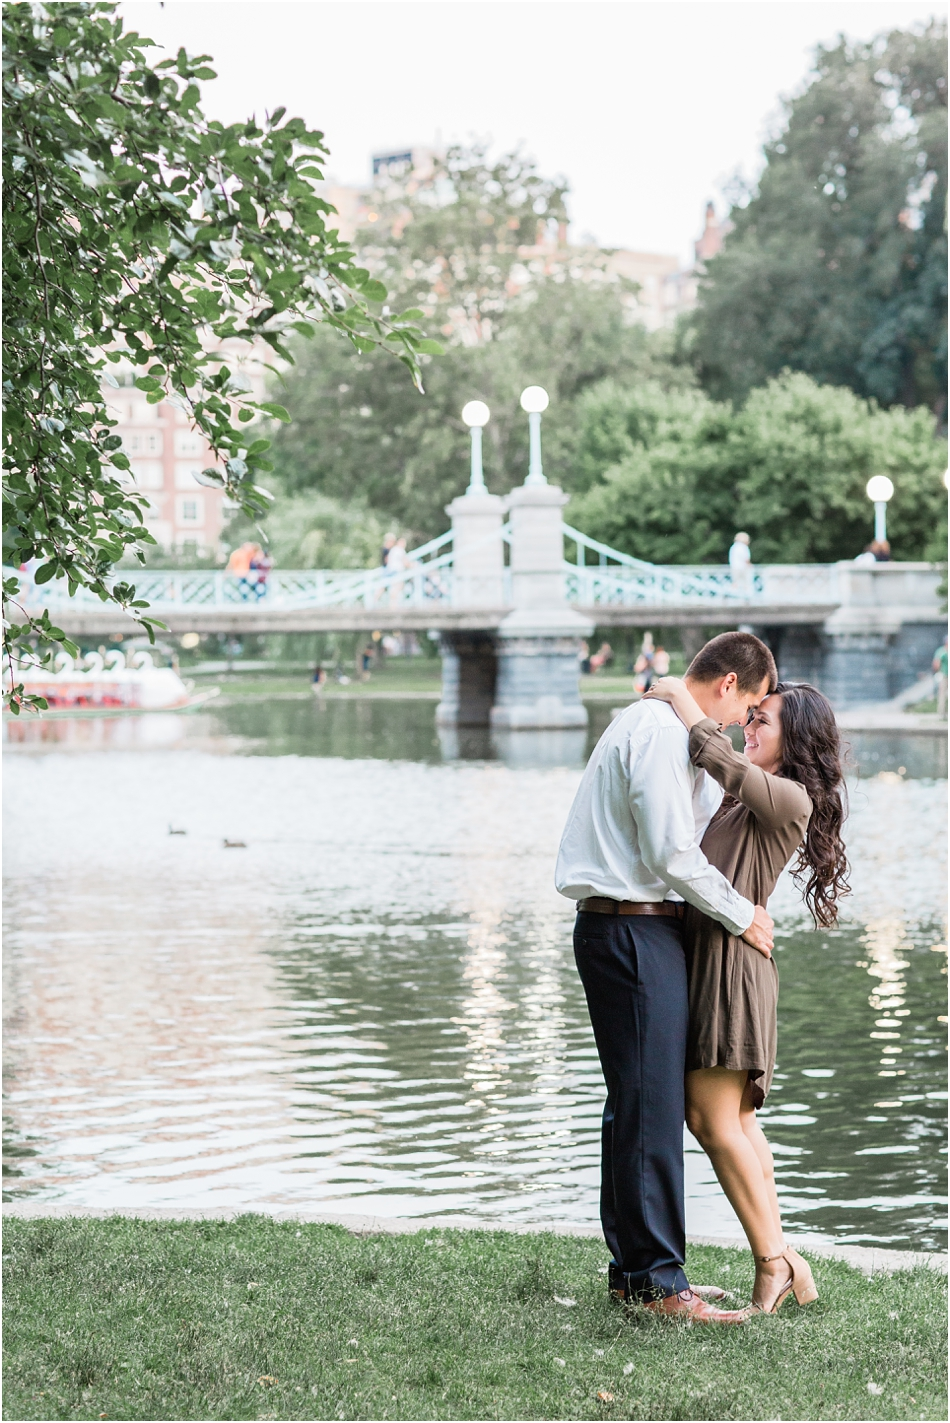 sheryl_corey_acorn_street_engagement_boston_commons_massachusetts_cape_cod_new_england_wedding_photographer_Meredith_Jane_Photography_photo_2017.jpg